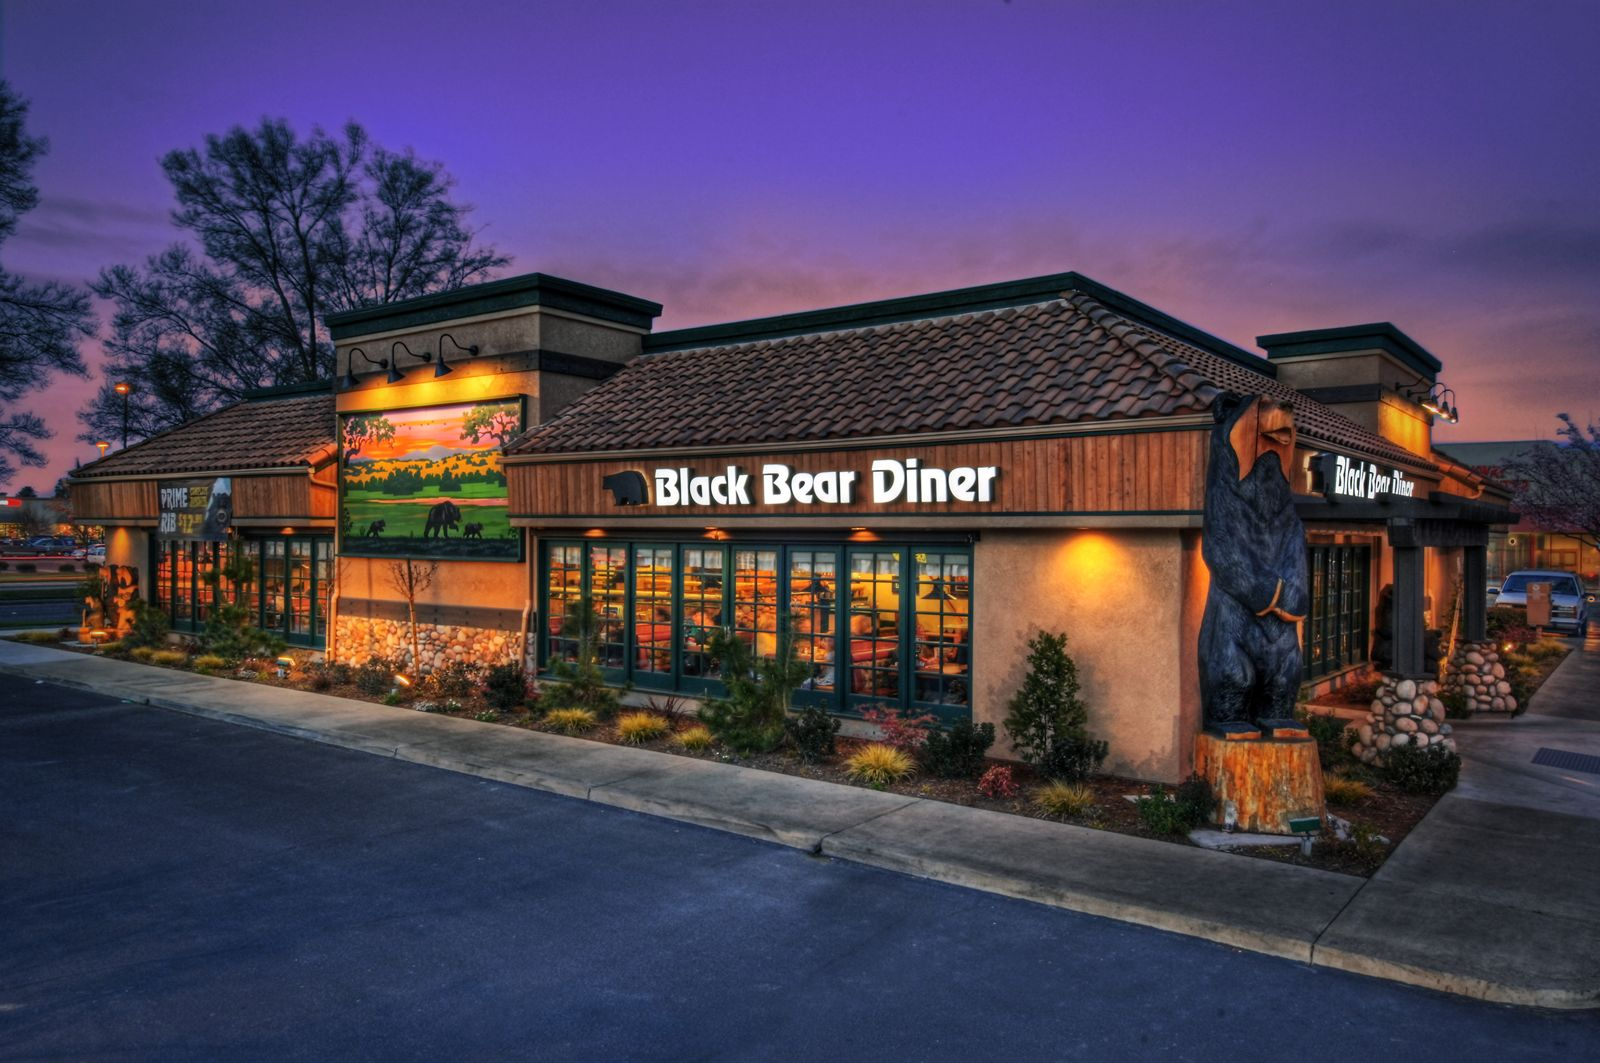 Black Bear Diner Marks 2019 Expansion Momentum With Four Restaurant Openings